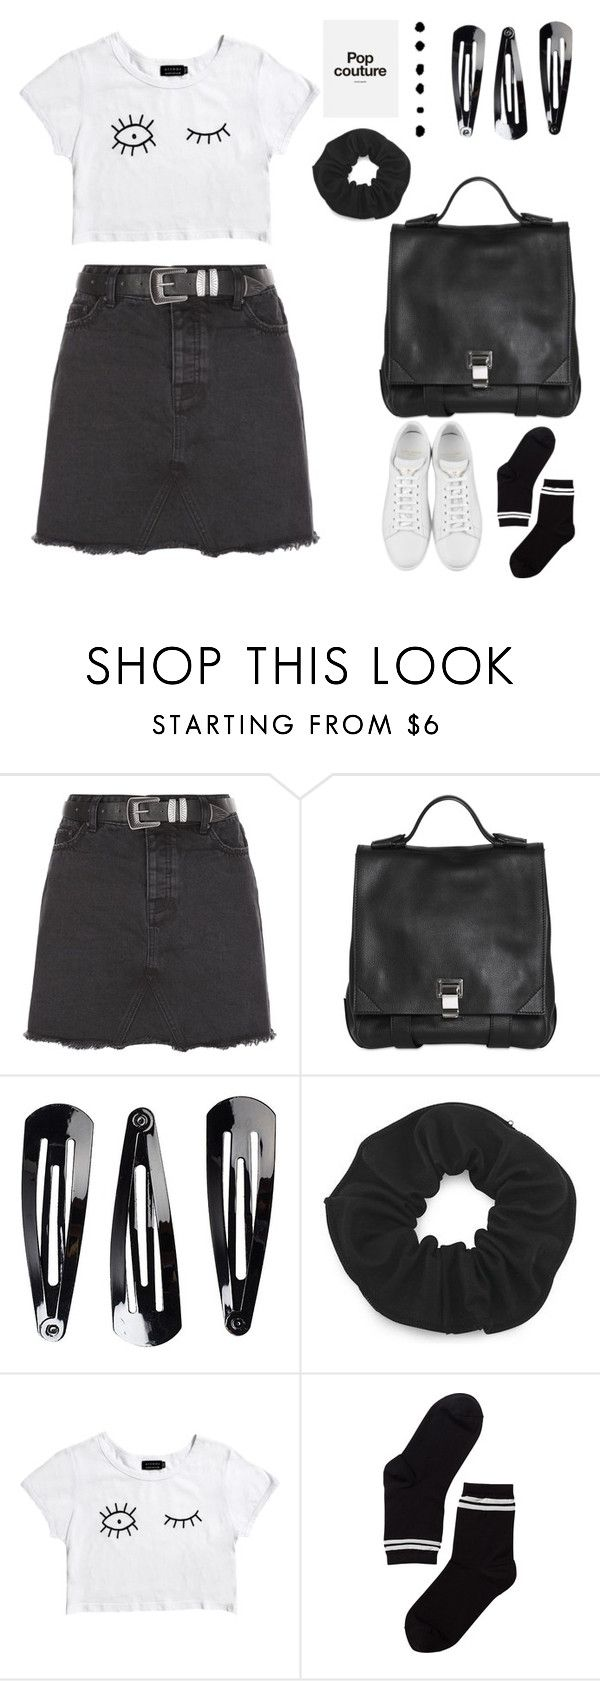 """""""pop culture is amazing"""" by gb041112 ❤ liked on Polyvore featuring New Look, Proenza Schouler, NLY Accessories, Afends, Karl Lagerfeld, Monki and Yves Saint Laurent"""